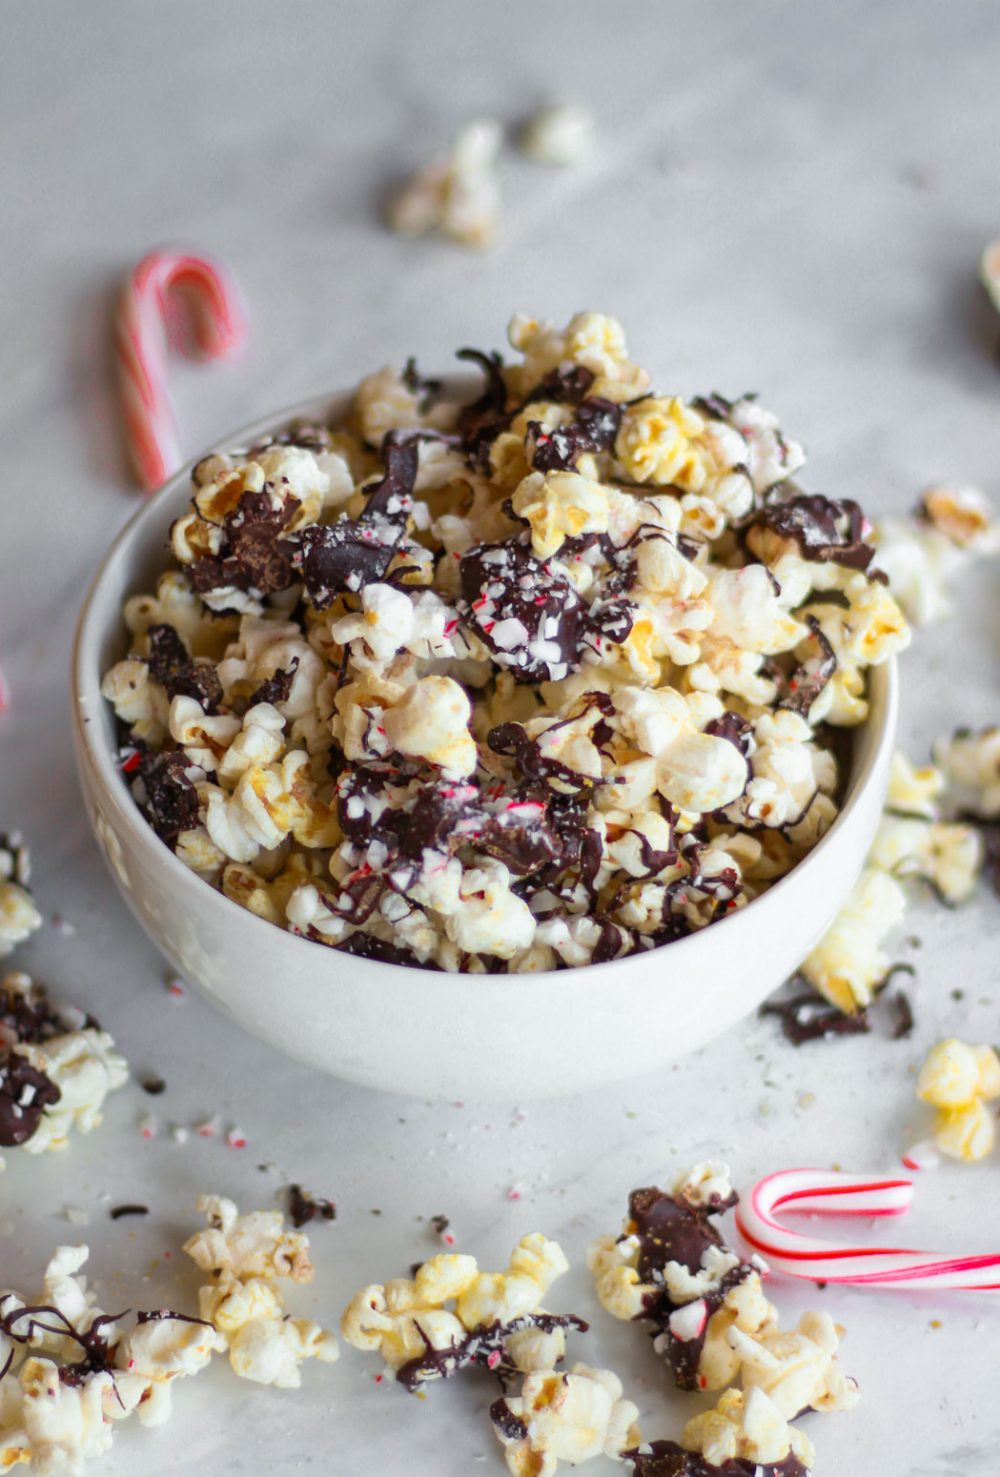 This vegan and gluten-free peppermint bark popcorn is the perfect holiday treat. Covered in crushed candy canes and dark chocolate, this Christmas recipe had a satisfying combination of sweet and savory notes.